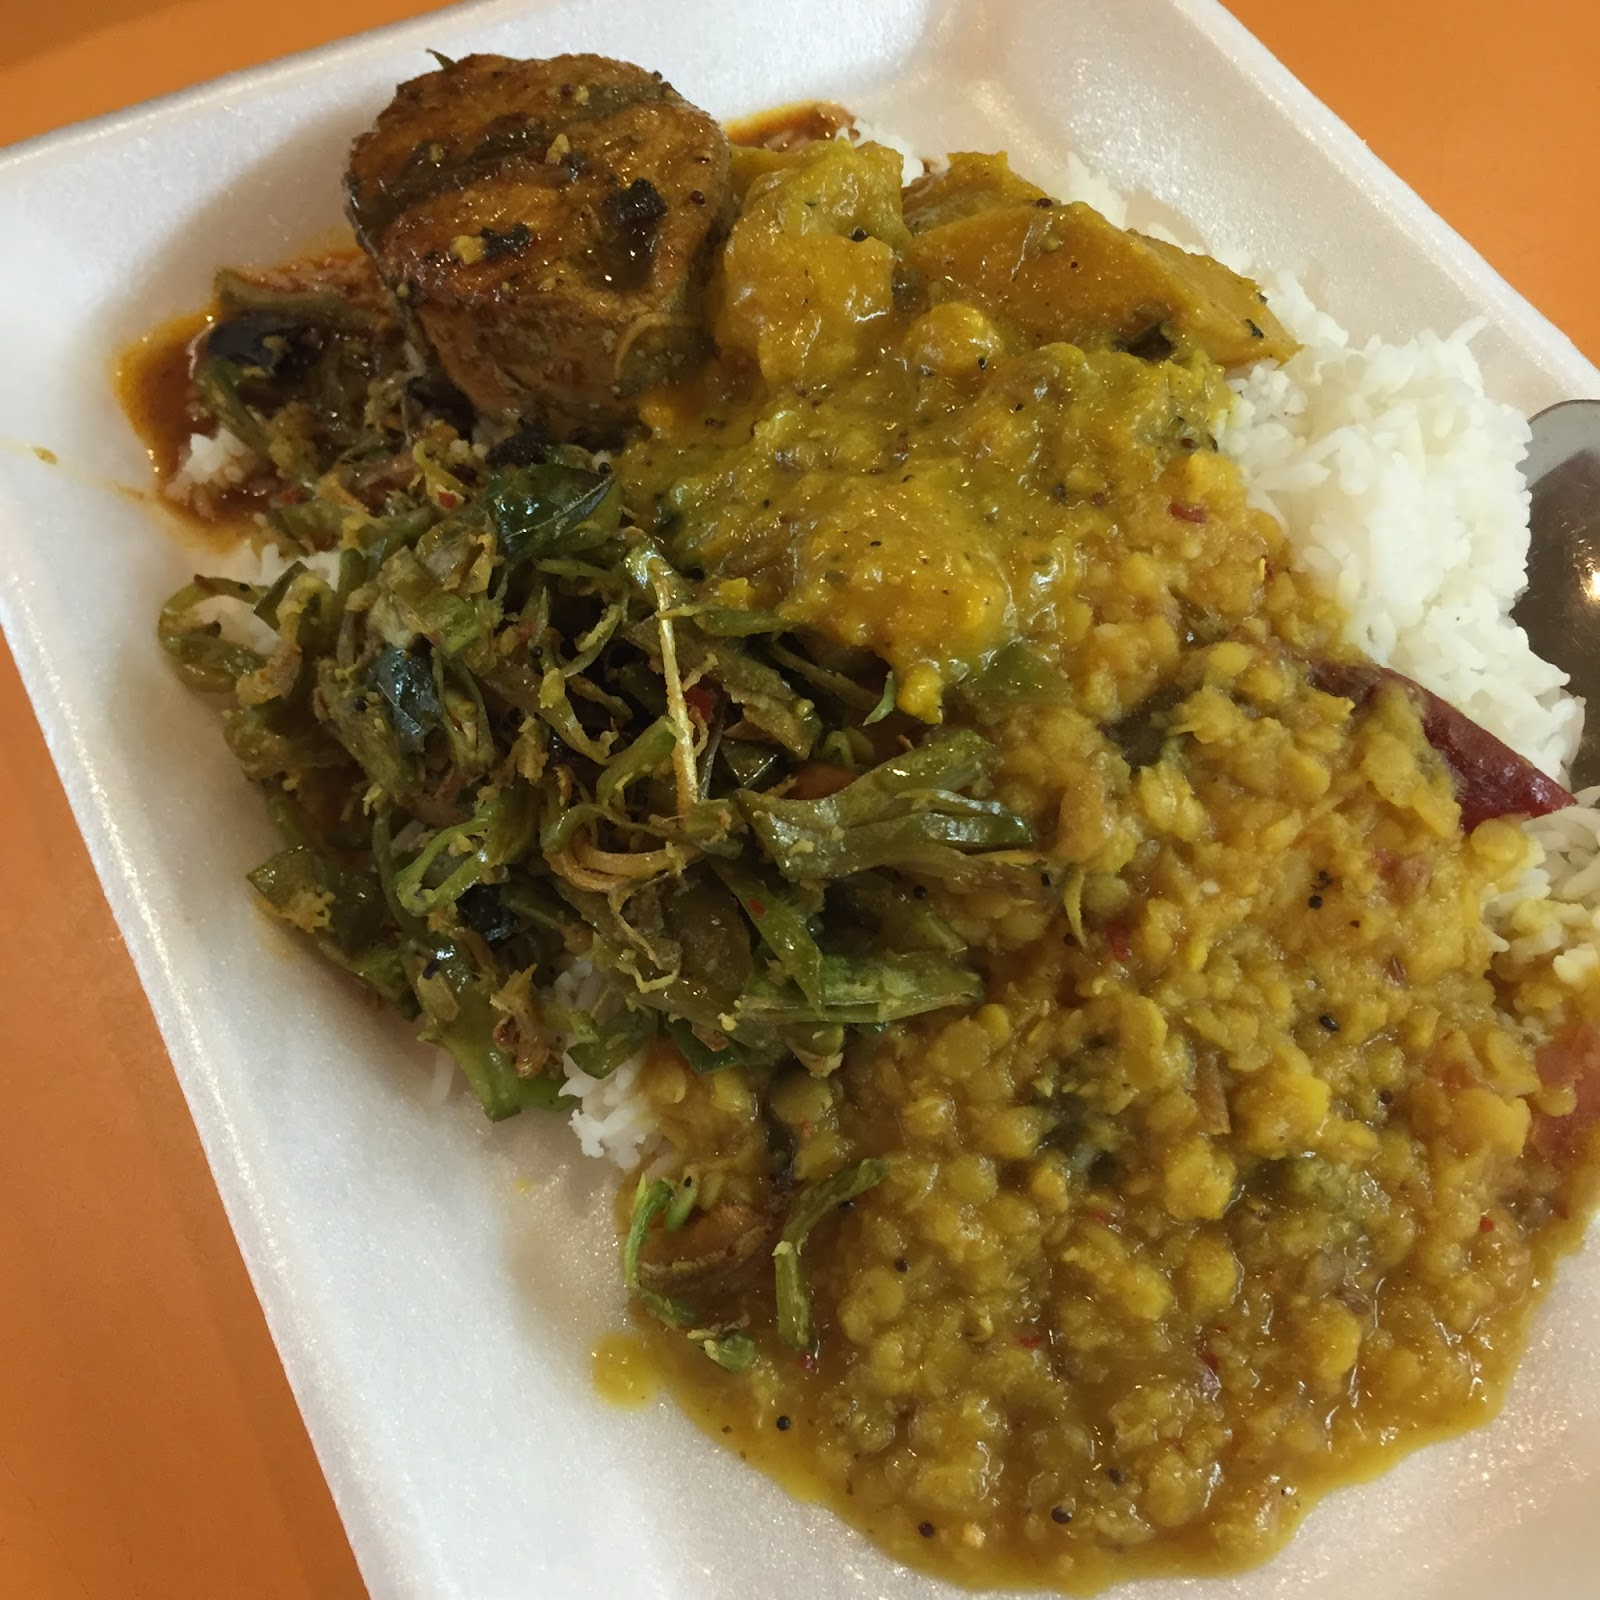 Expat kiwis authentic sri lankan cuisine at tekka market for Authentic sri lankan cuisine